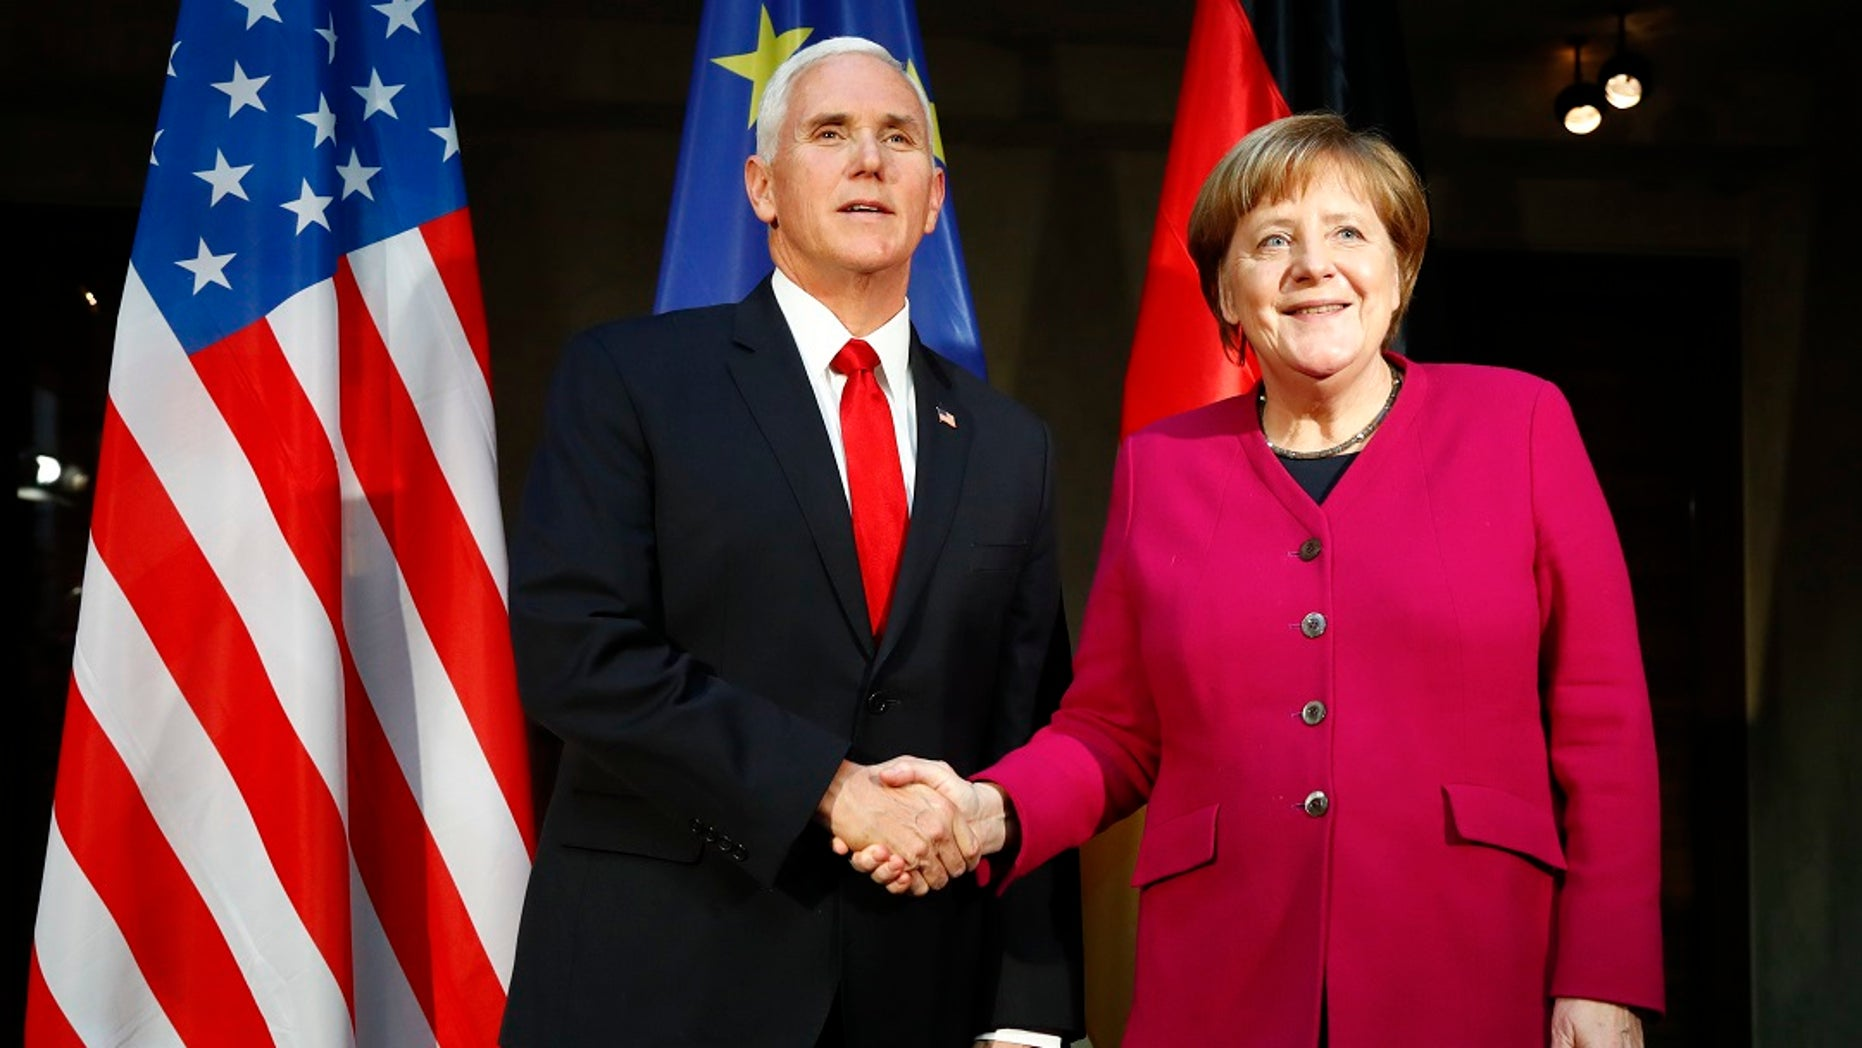 "Vice President Mike Pence and German Chancellor Angela Merkel meet at the Munich Security Conference in Munich, Germany, February 1<div class=""e3lan e3lan-in-post1""><script async src=""//pagead2.googlesyndication.com/pagead/js/adsbygoogle.js""></script>